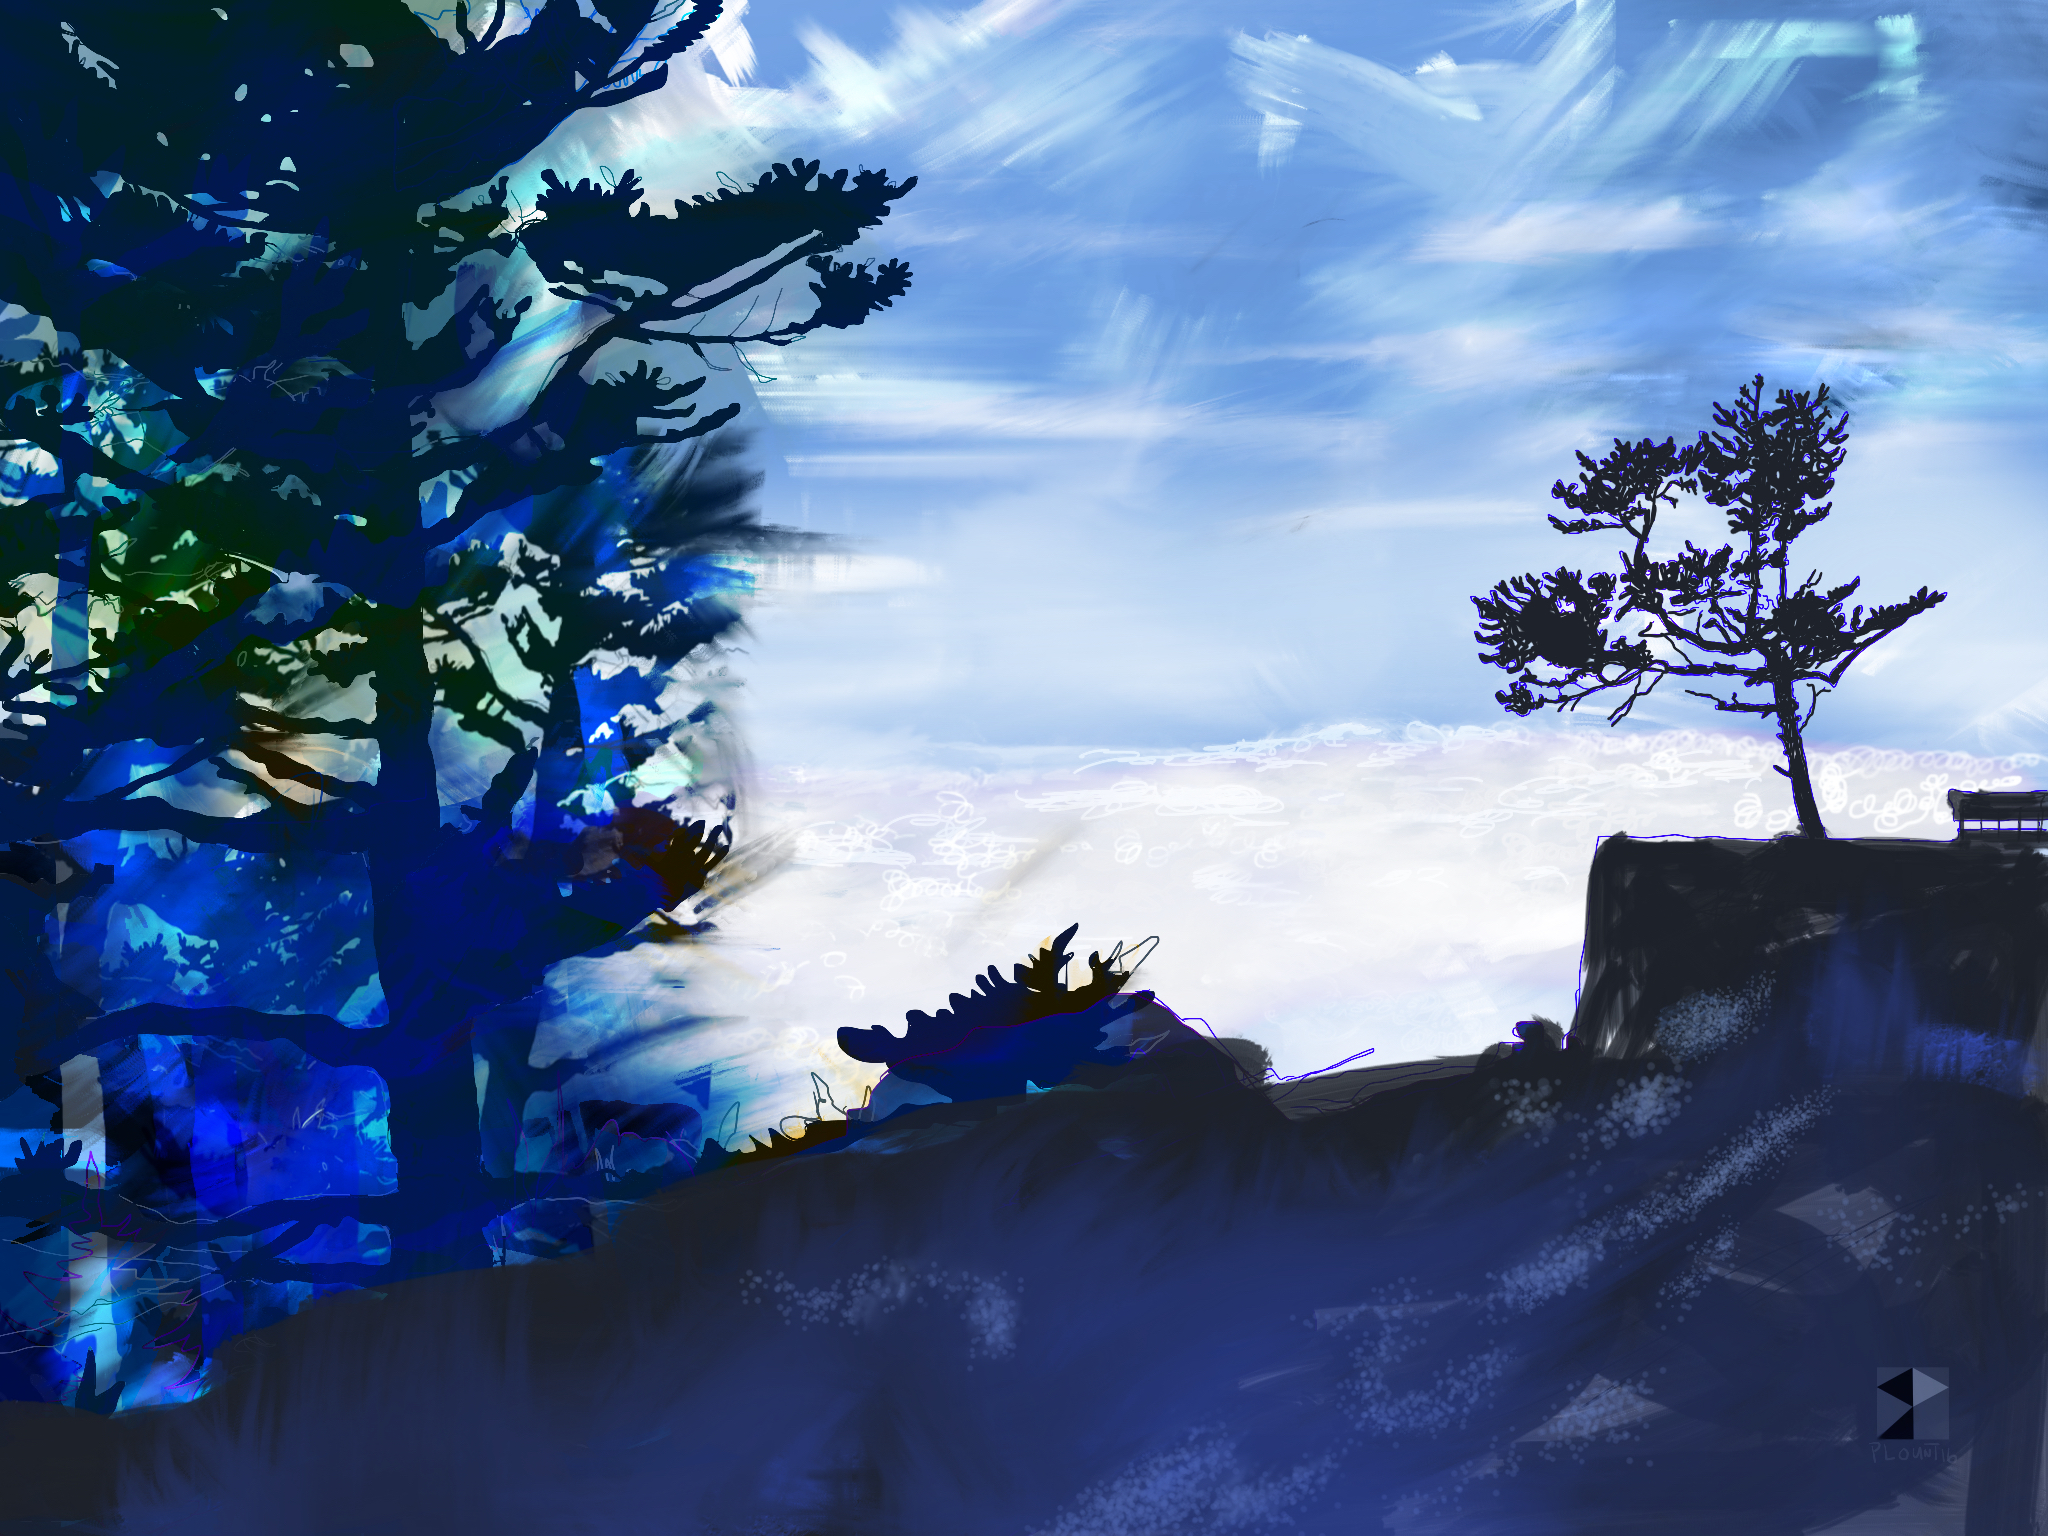 """A light dusting of snow, Sandhakphu, West Bengal, India, Bharat    Electronics Painting, iPad, Procreate, Pencil 53, Photoshop. © 2016 dimensions variable to 48"""" x 60"""" giclee limited edition prints available contact the artist"""